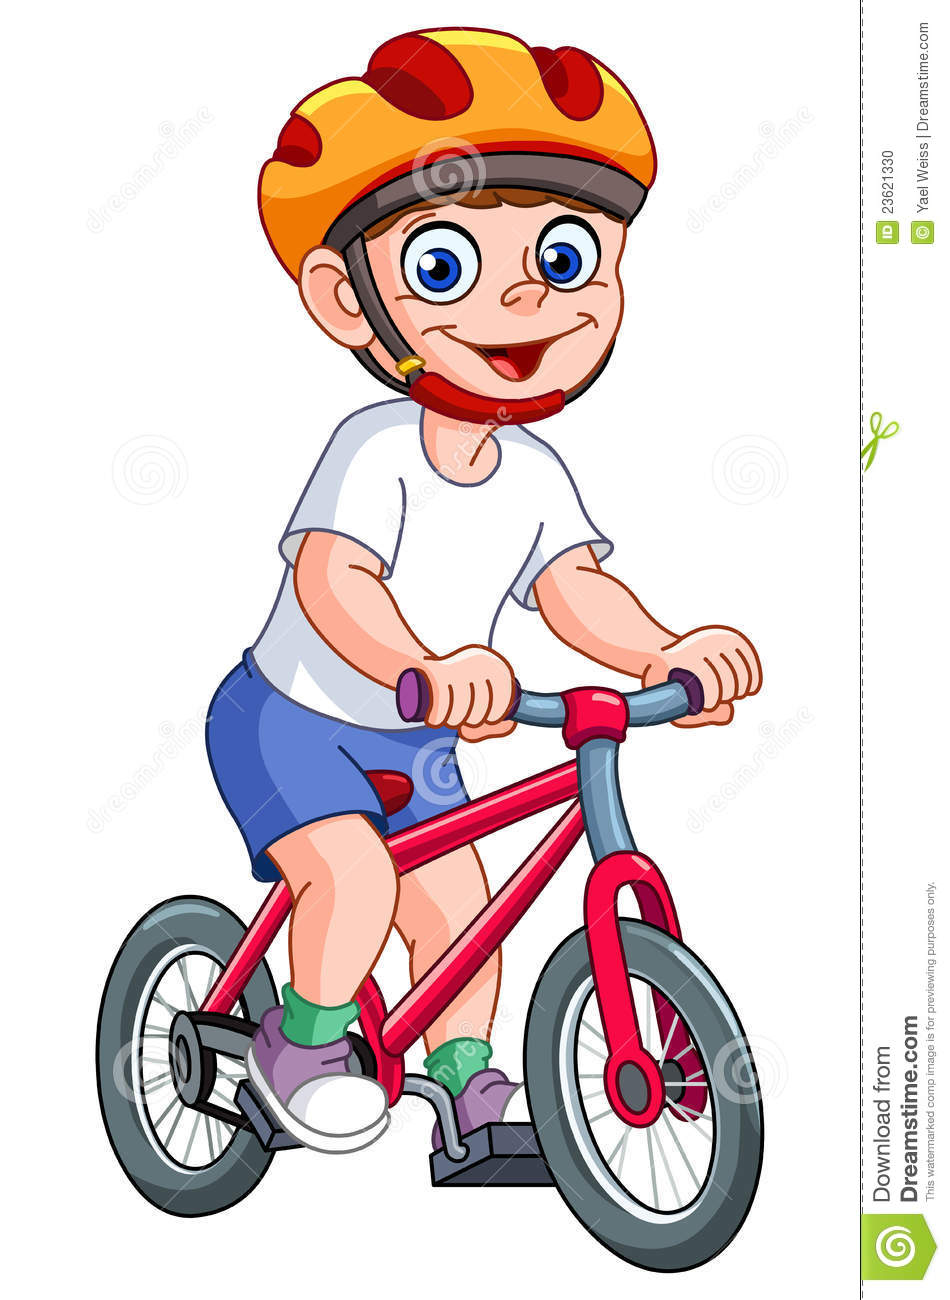 kid on bicycle stock vector illustration of person